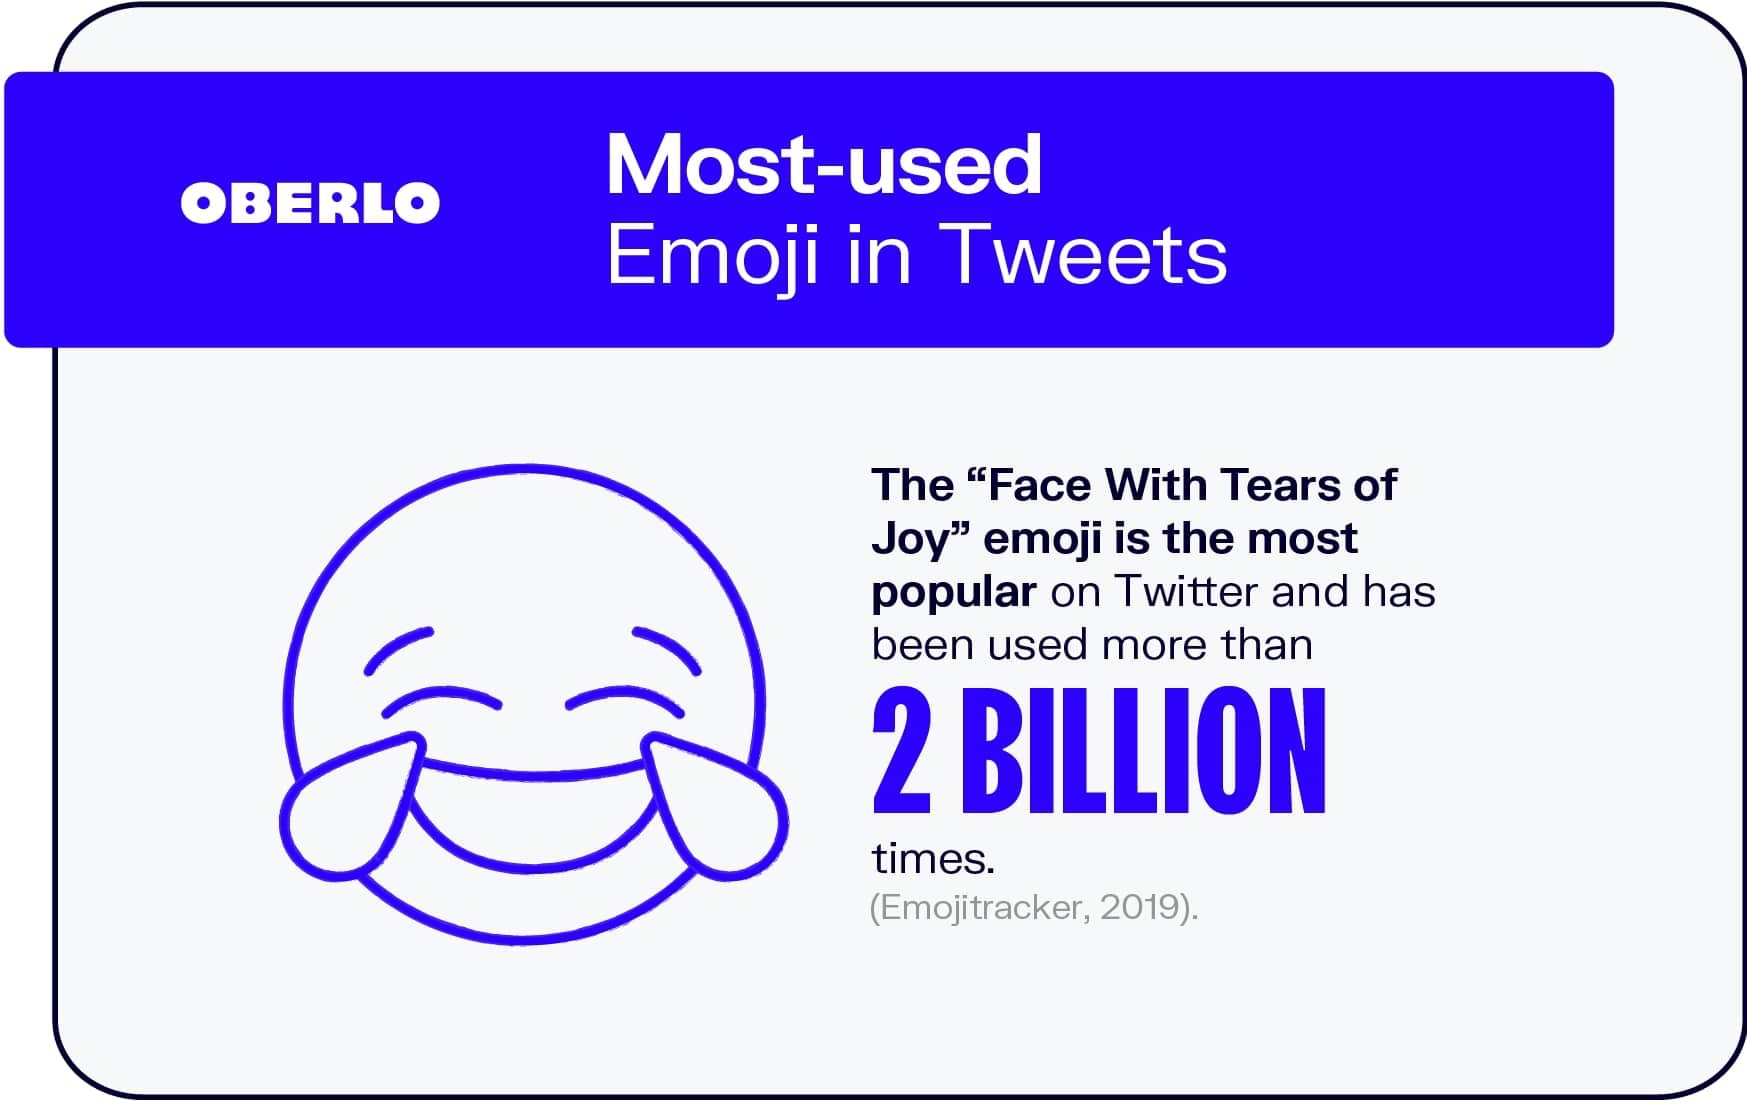 Most-used Emoji in Tweets